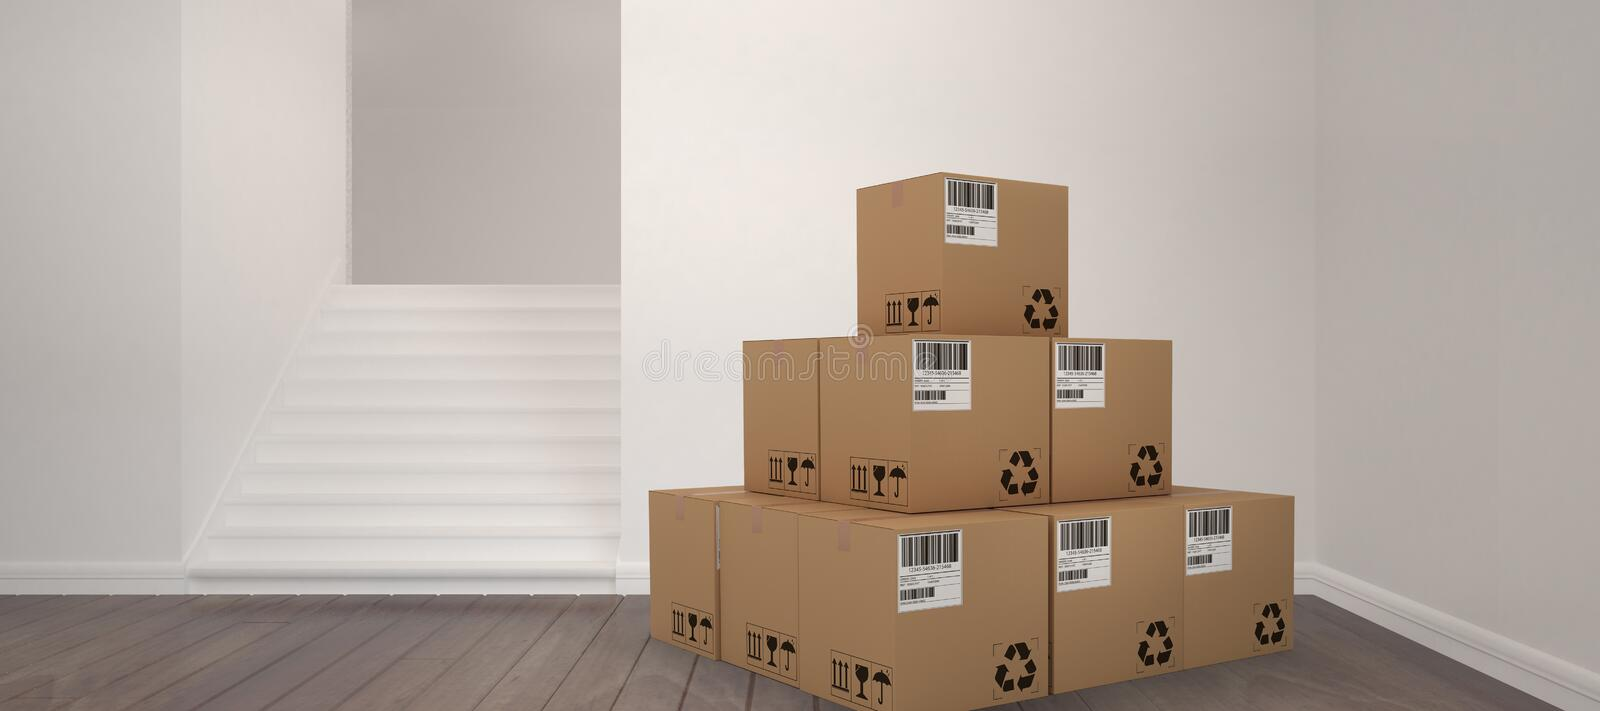 Composite 3d image of heap of brown packed cardboard boxes stock illustration